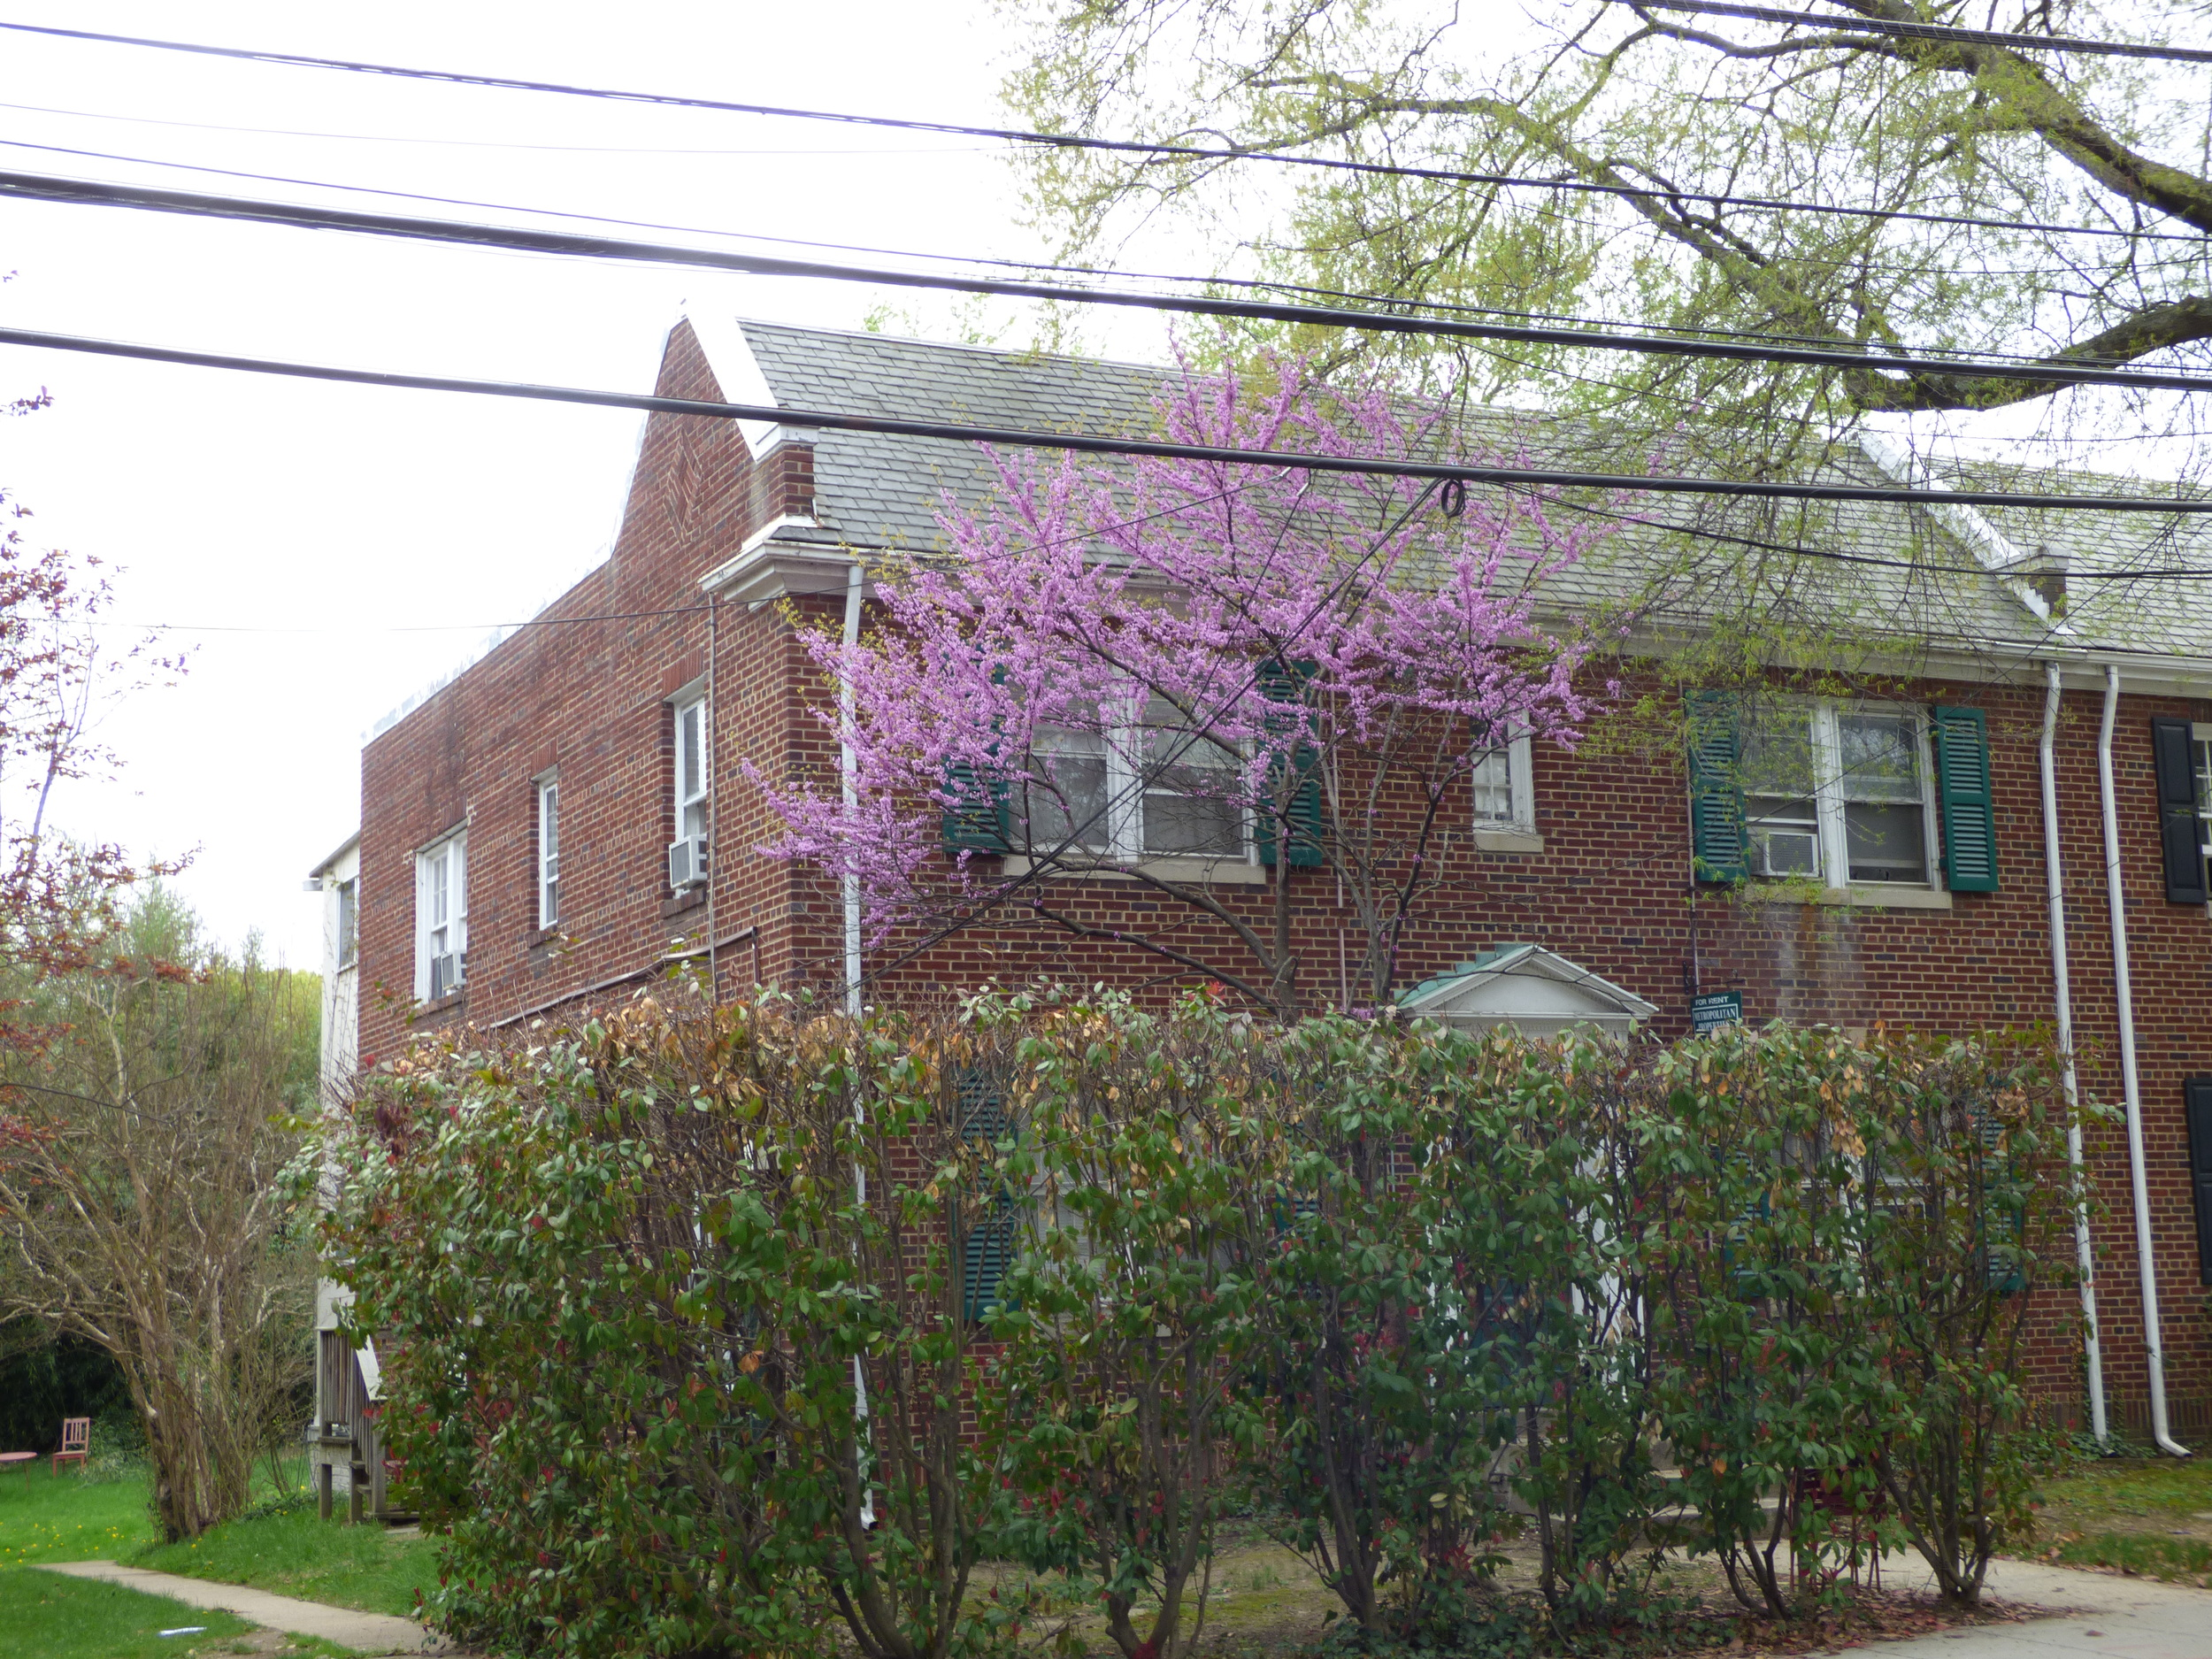 $1975 - 4508 MacArthur Blvd, NW, 2BR/1BA, Available June 1